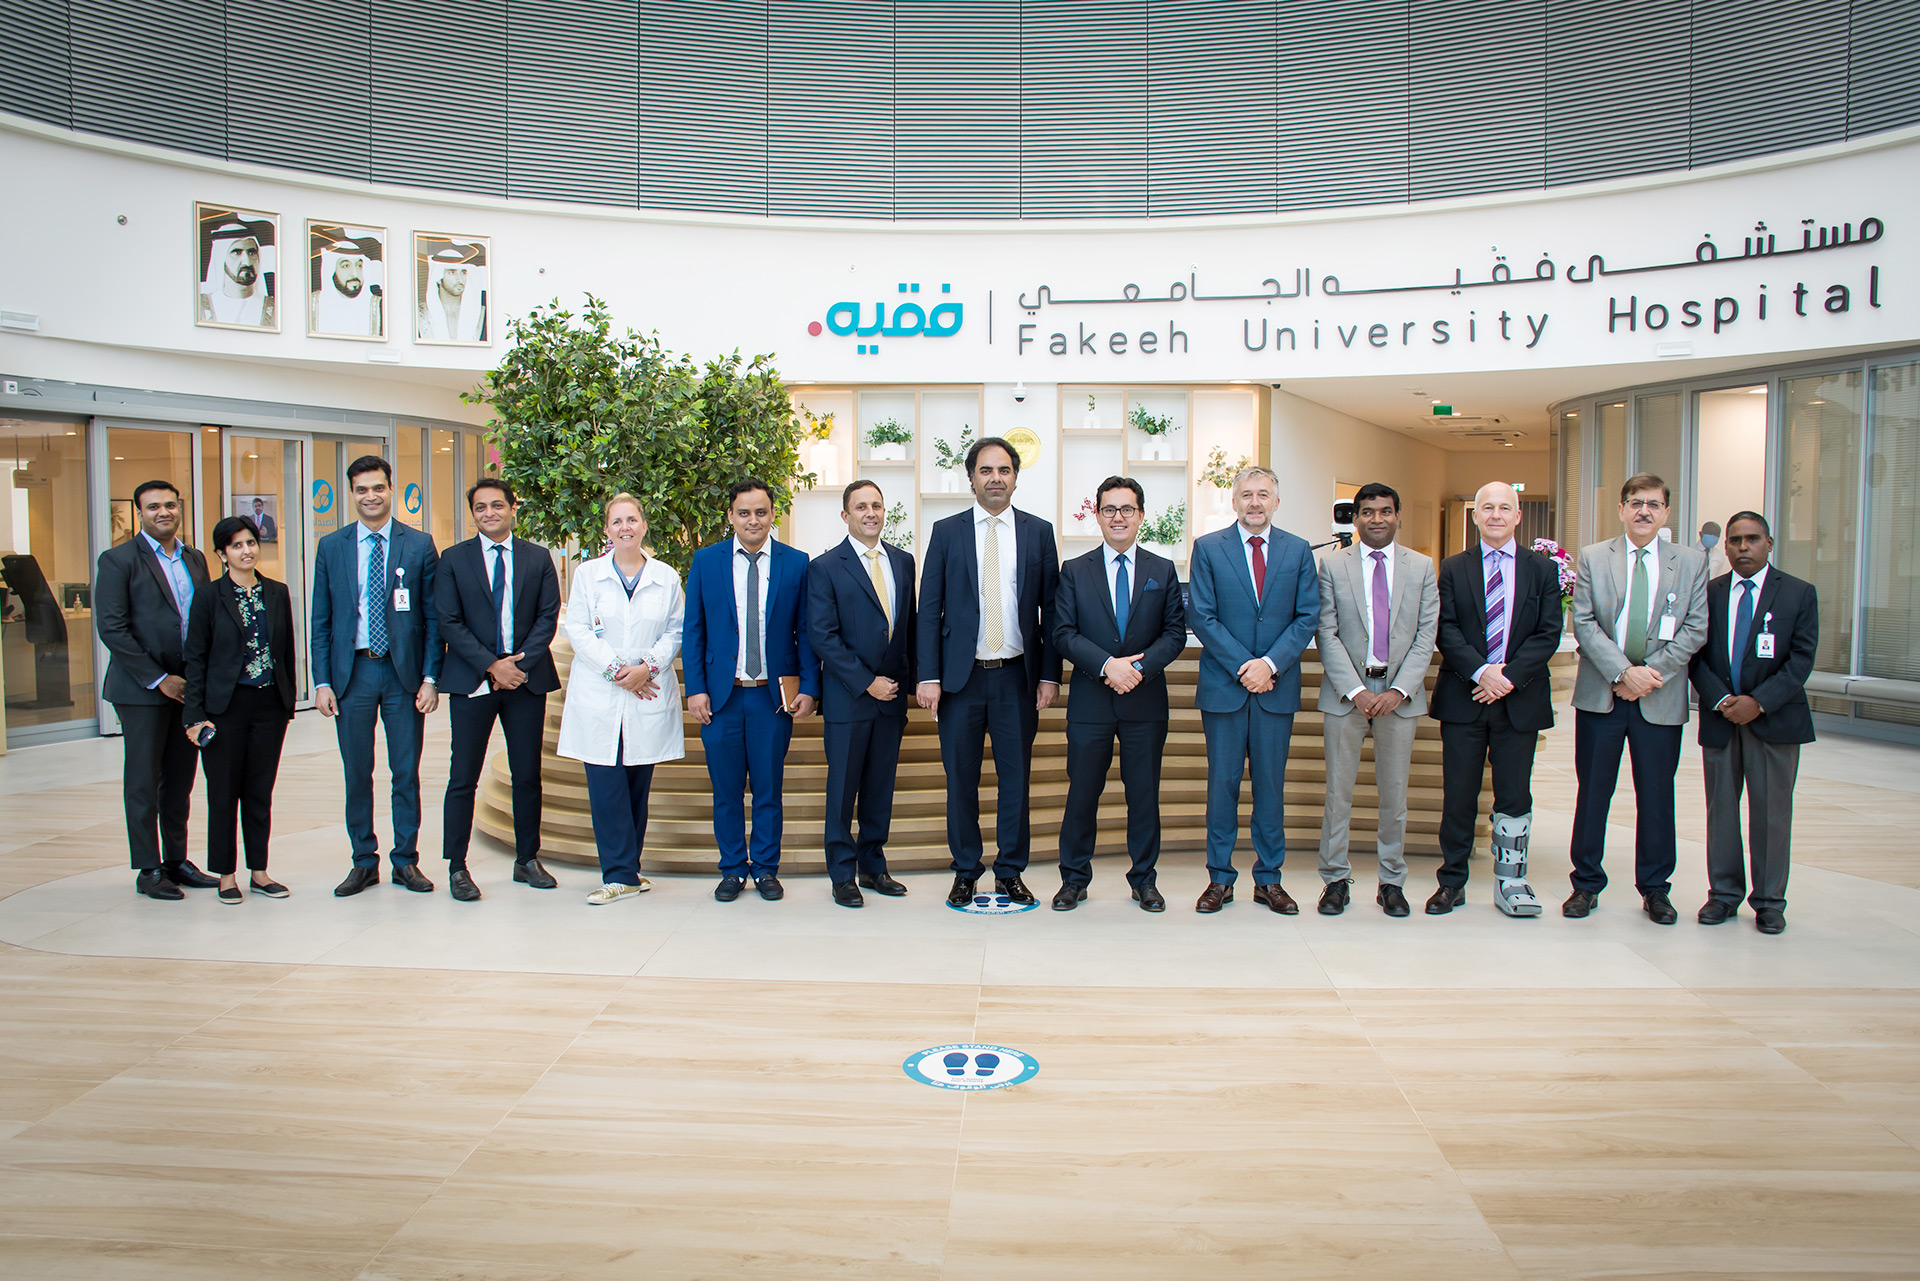 Fakeeh-University-Hospital-partners-with-Siemens